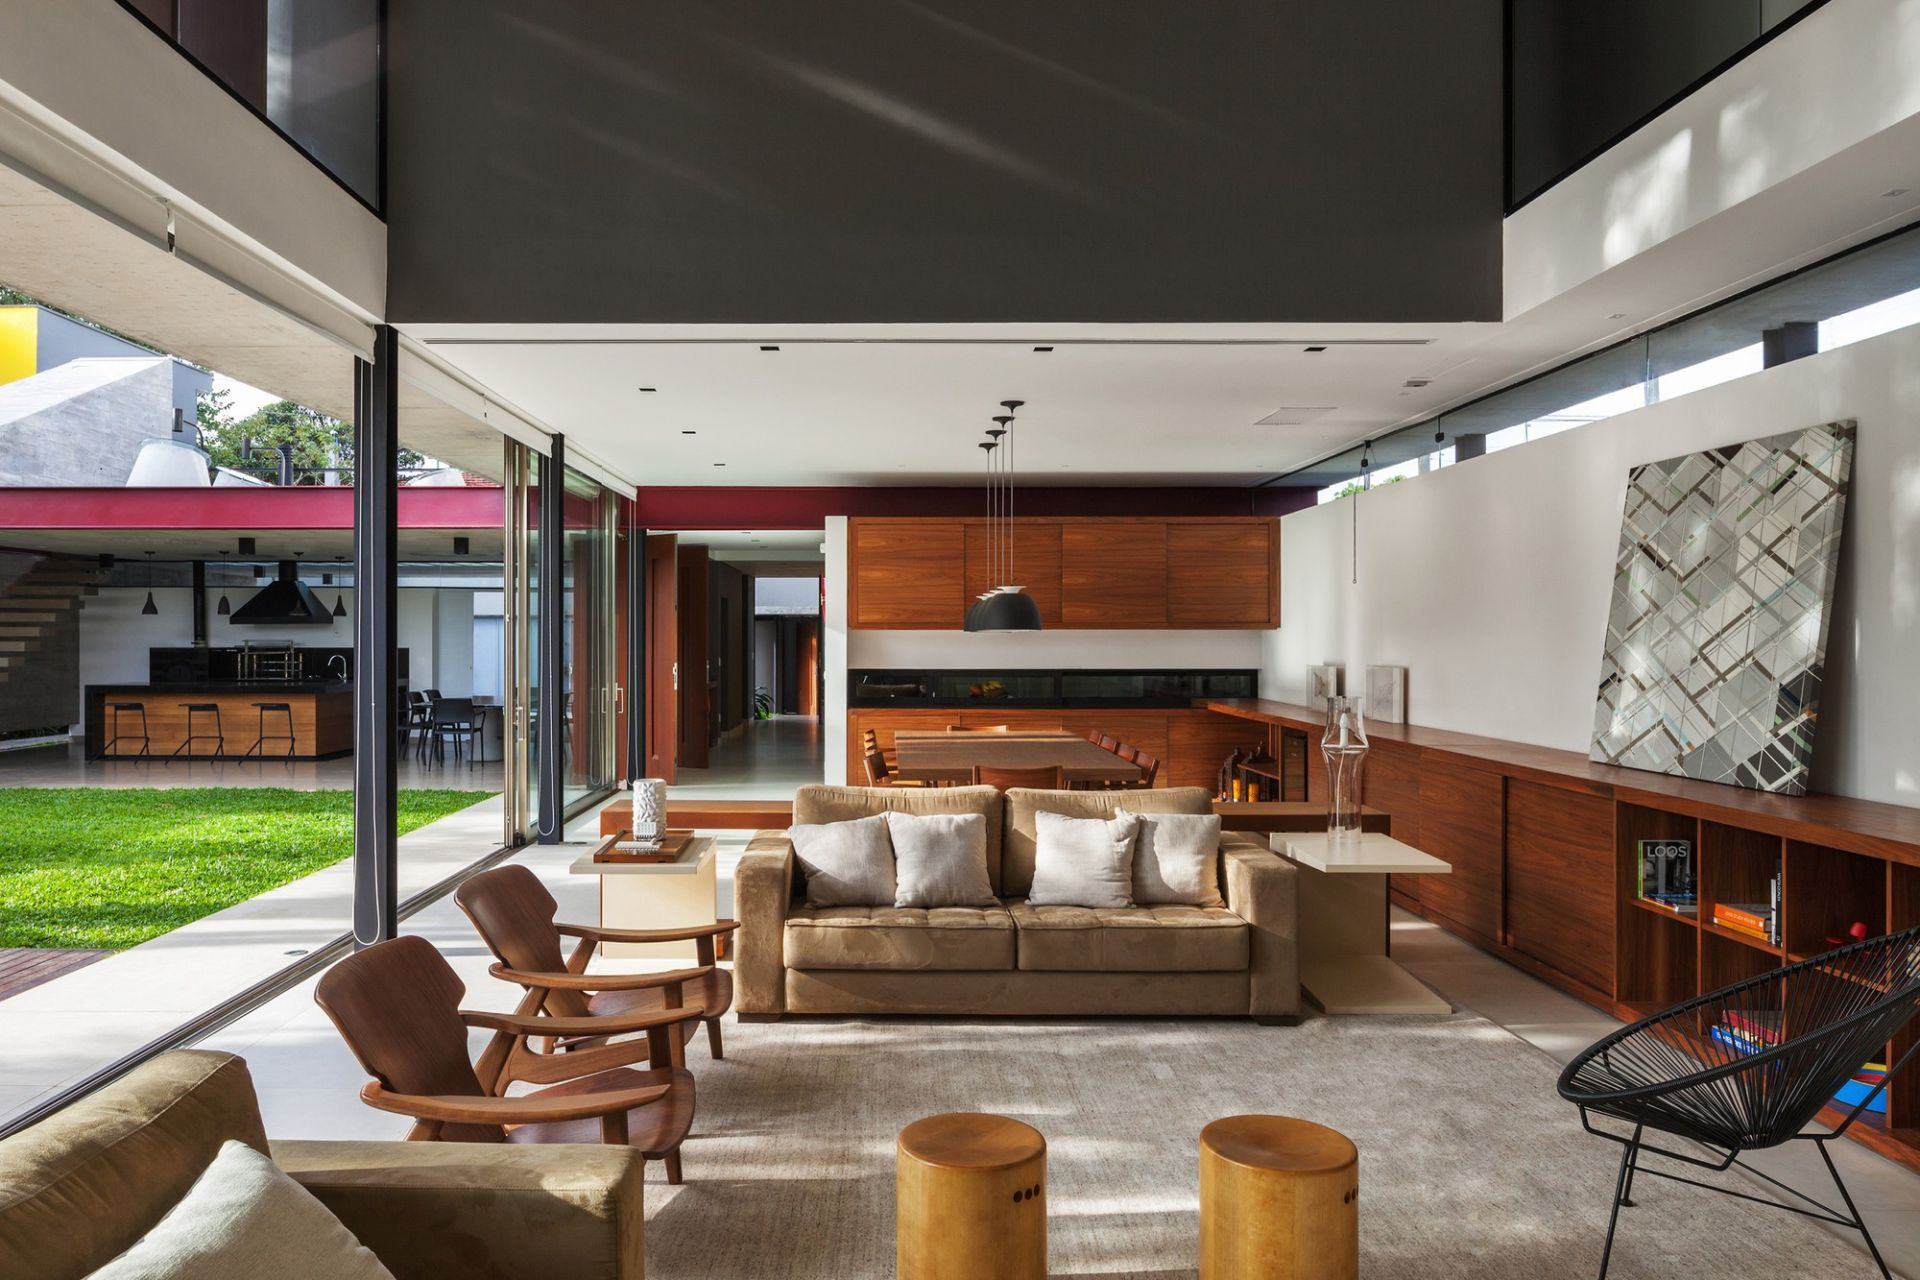 Living room and dining room integrated